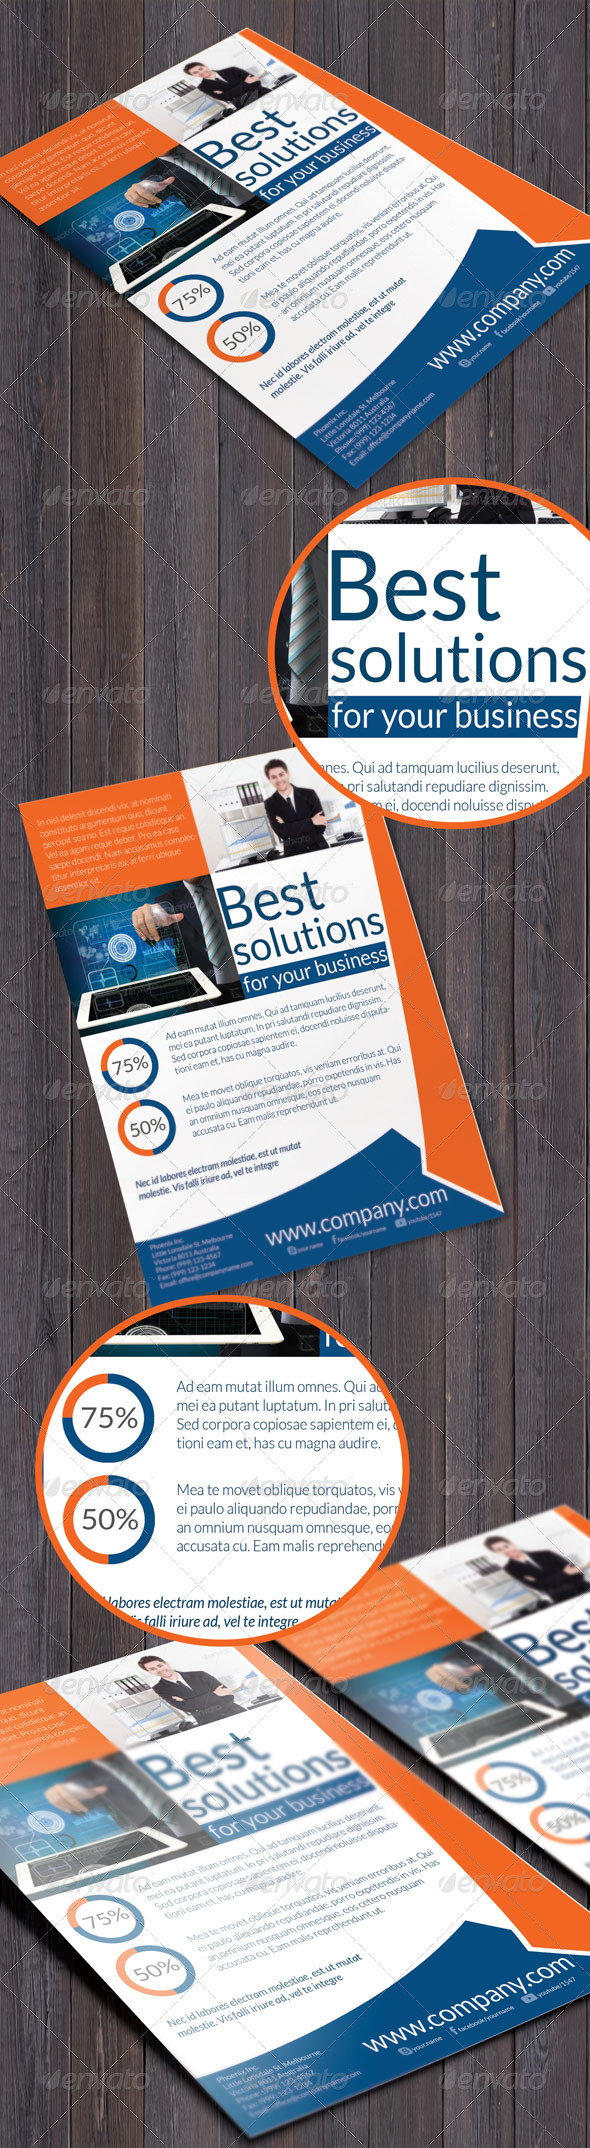 Business Solution Flyer - Corporate Flyers